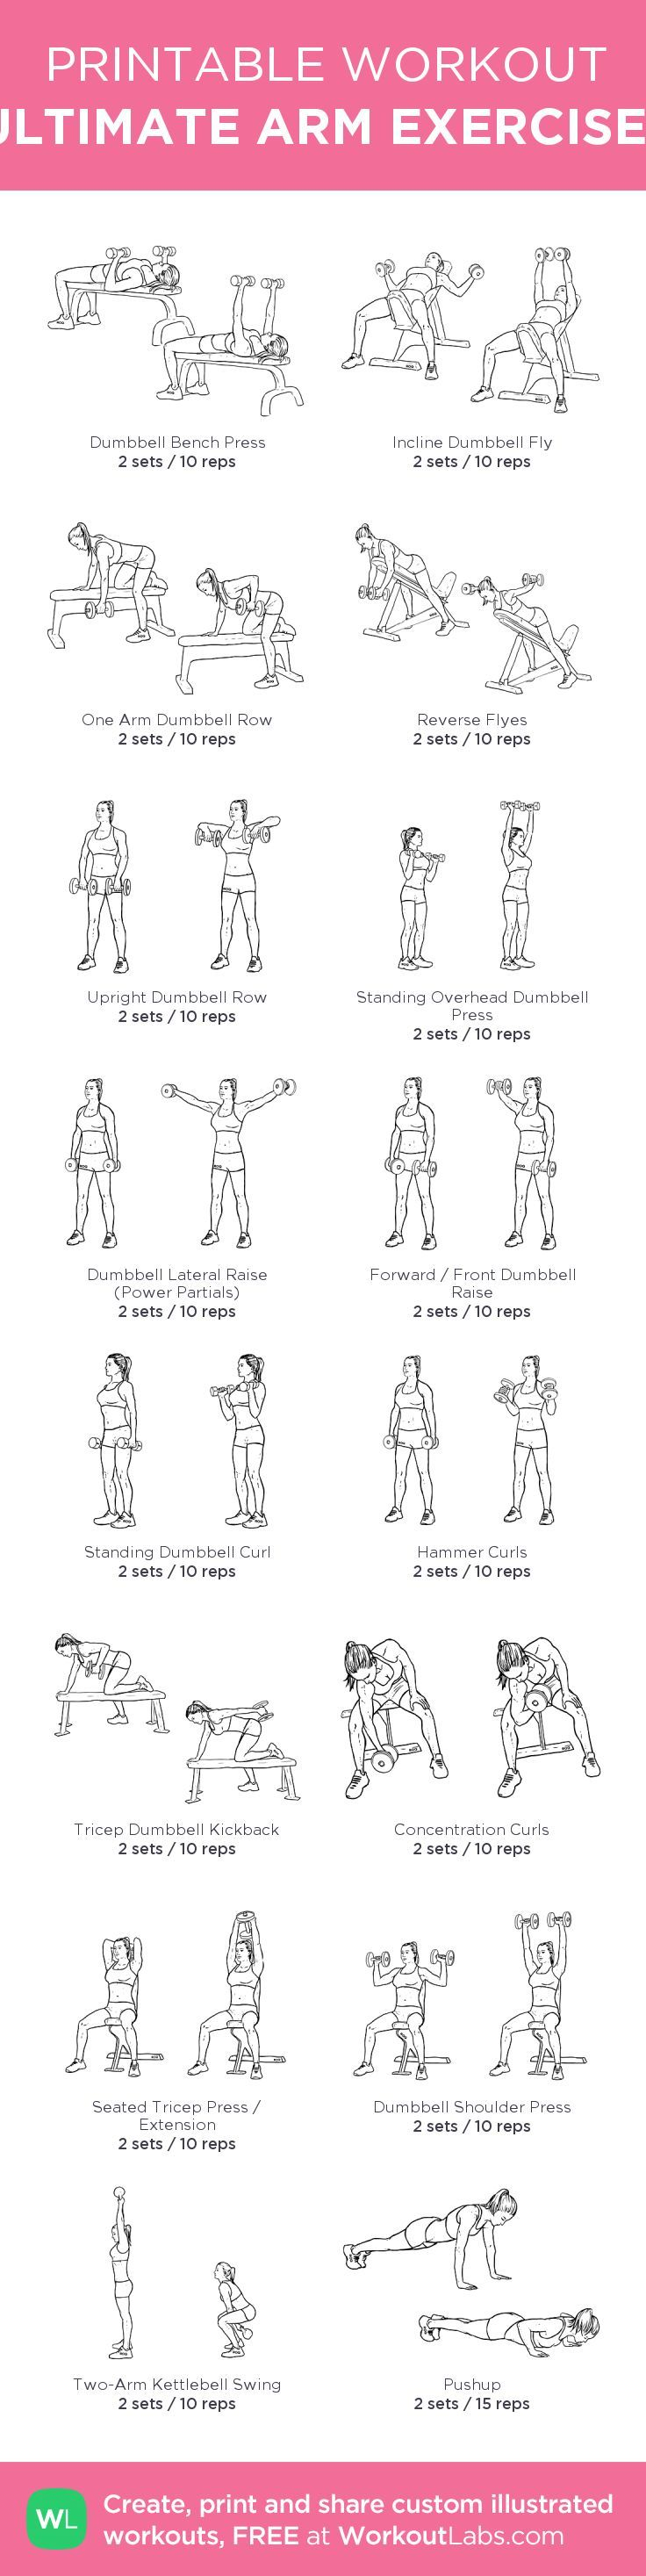 ULTIMATE ARM EXERCISES: my custom printable workout by ...